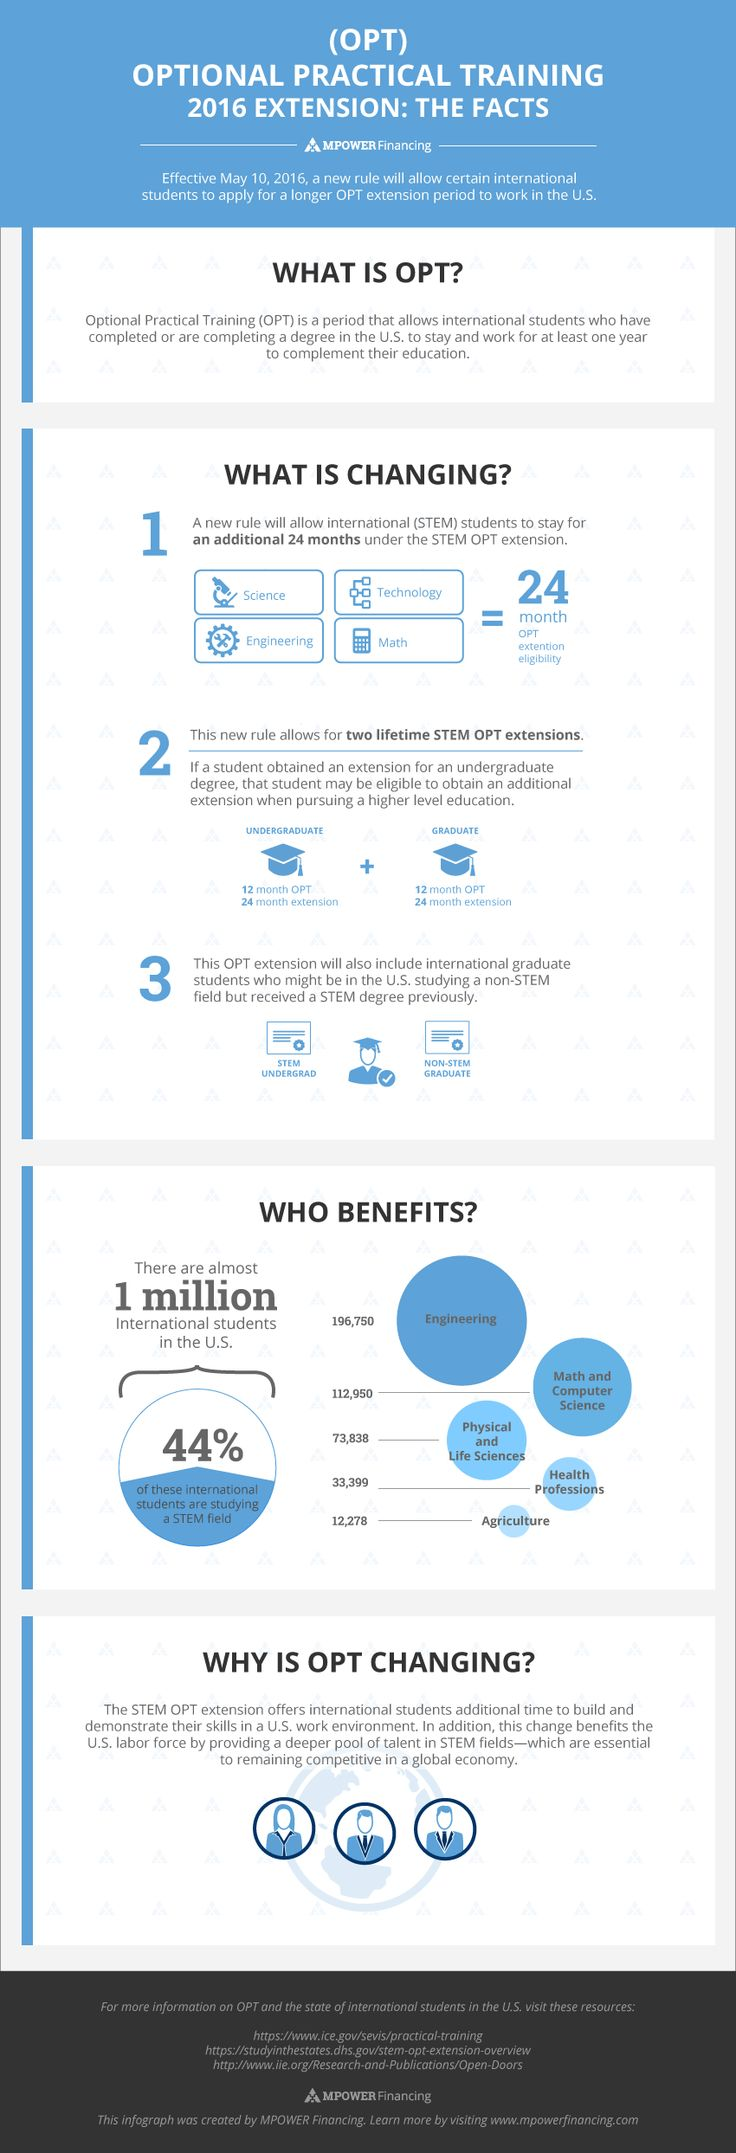 Optional Practical Training 2016 Extension Infographic - http://elearninginfographics.com/optional-practical-training-2016-extension-infographic/